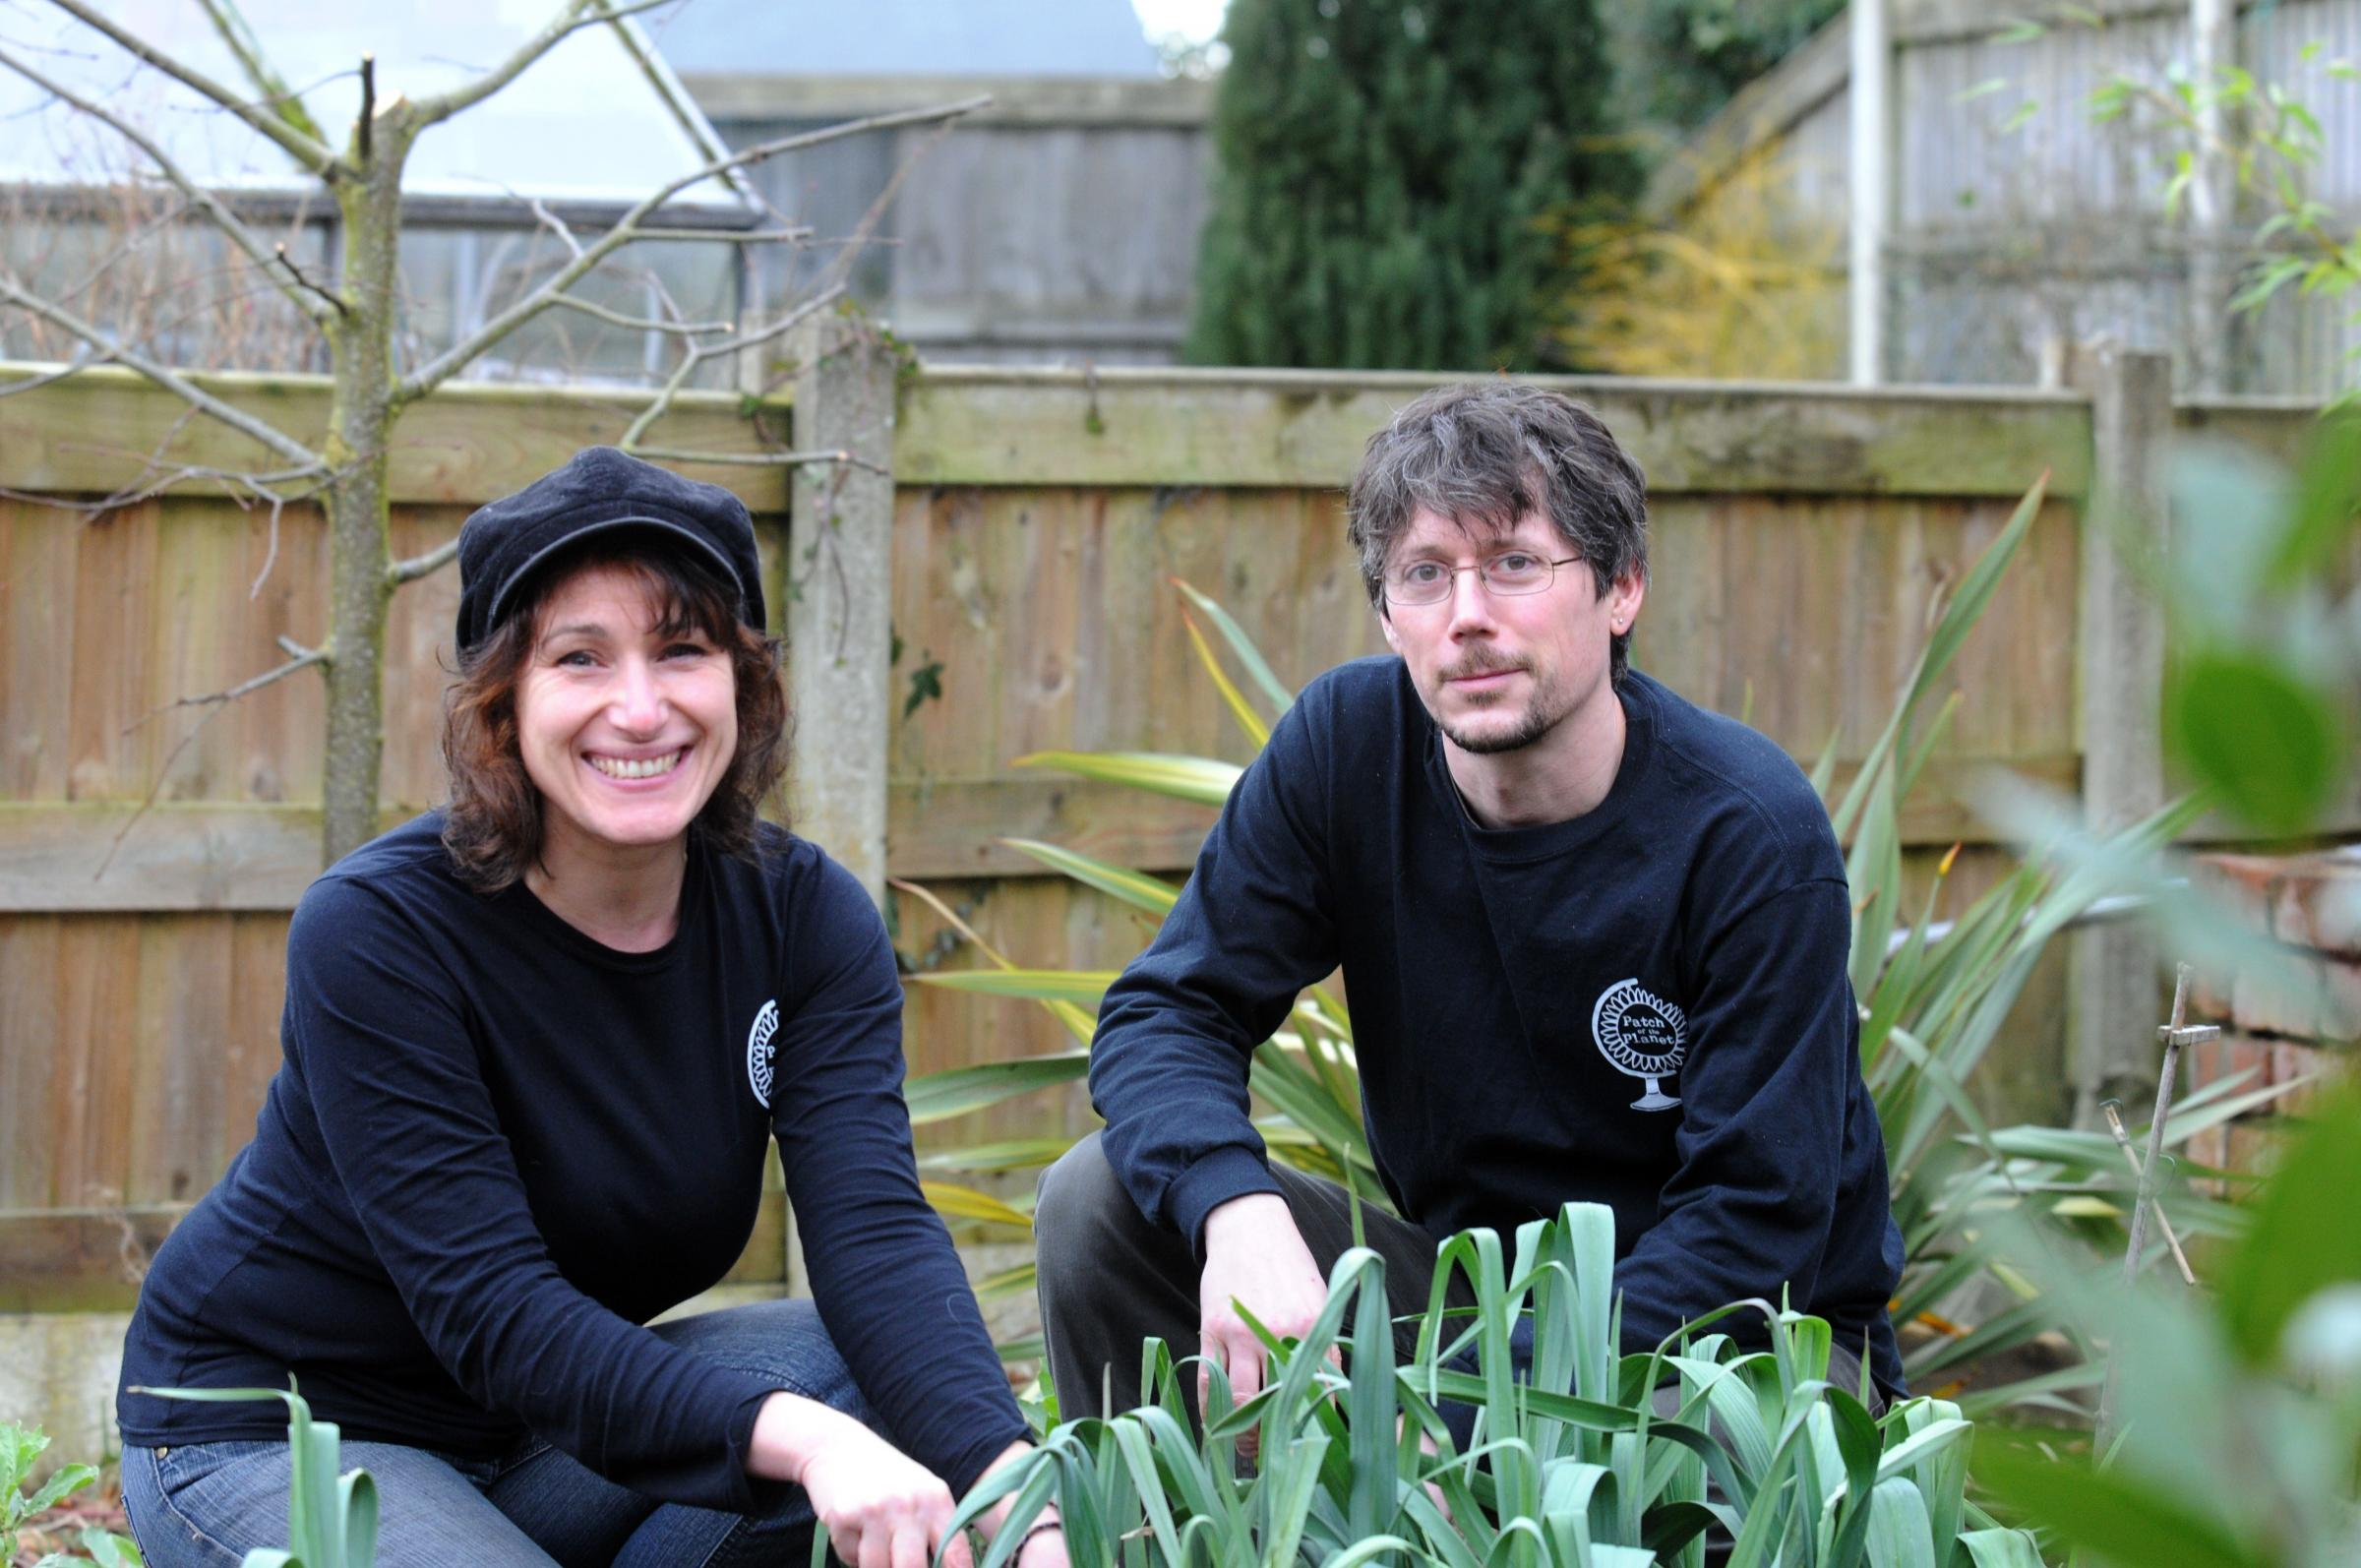 Gardeners Neil and Dina from Patch of the Planet